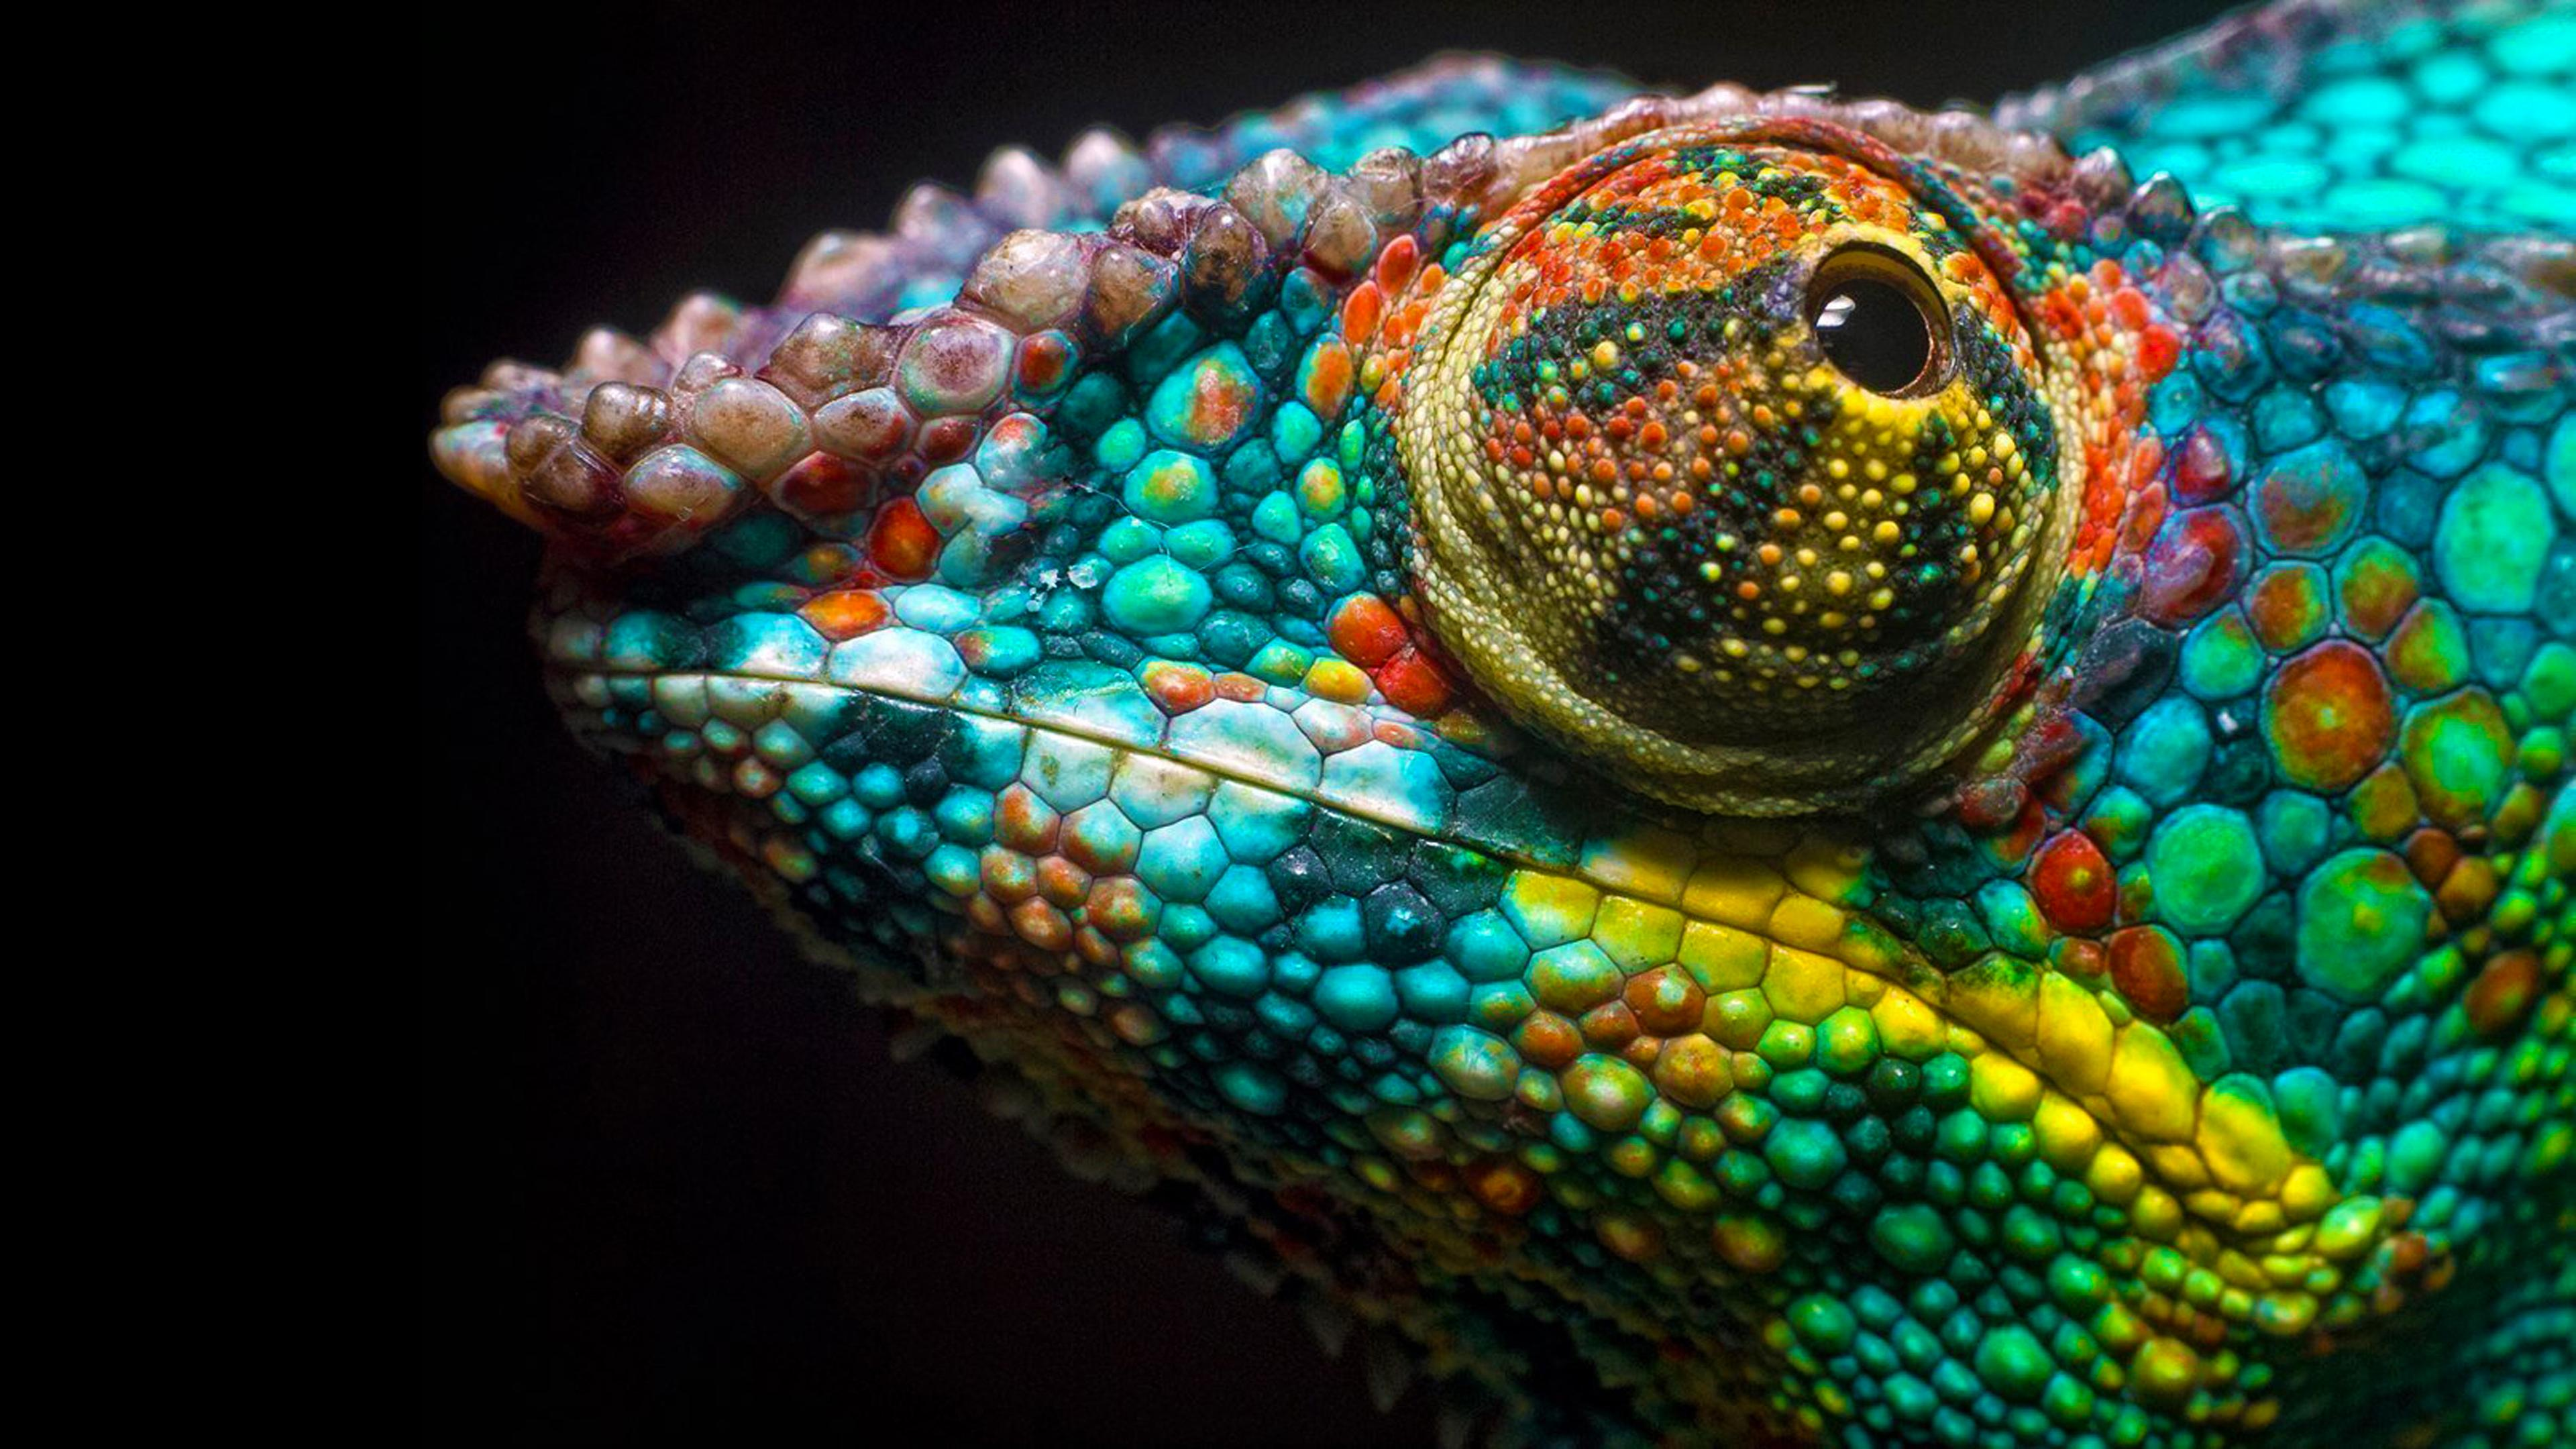 Colorful Chameleon Wallpapers Top Free Colorful Chameleon